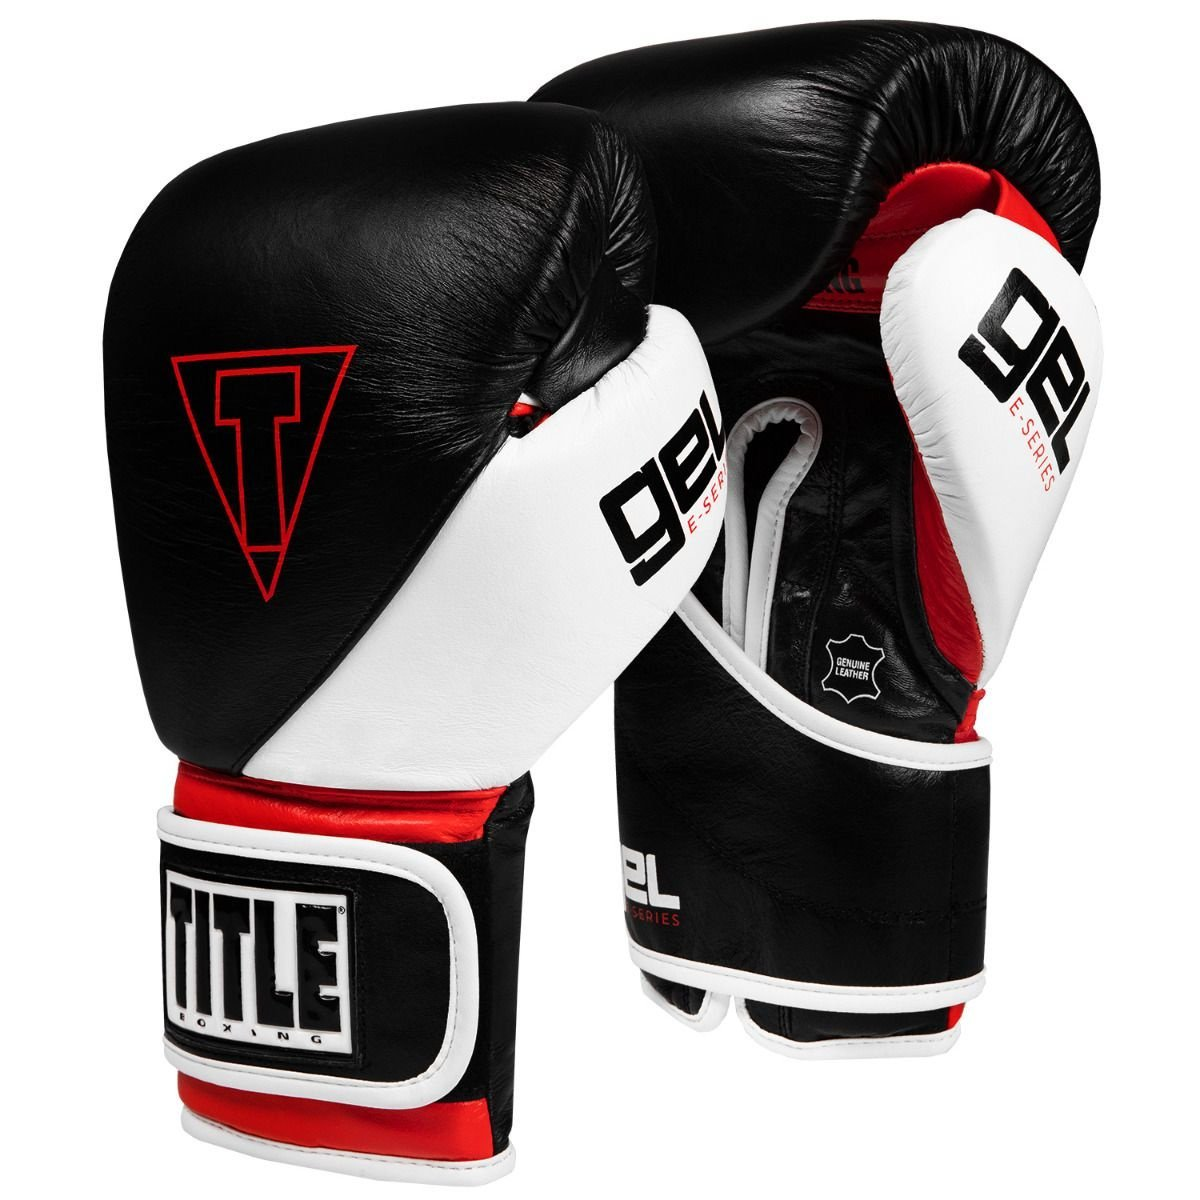 TITLE GLOVES LEATHER GEL E-SERIES BLACK/RED/WHITE - MSM FIGHT SHOPTITLE BOXING